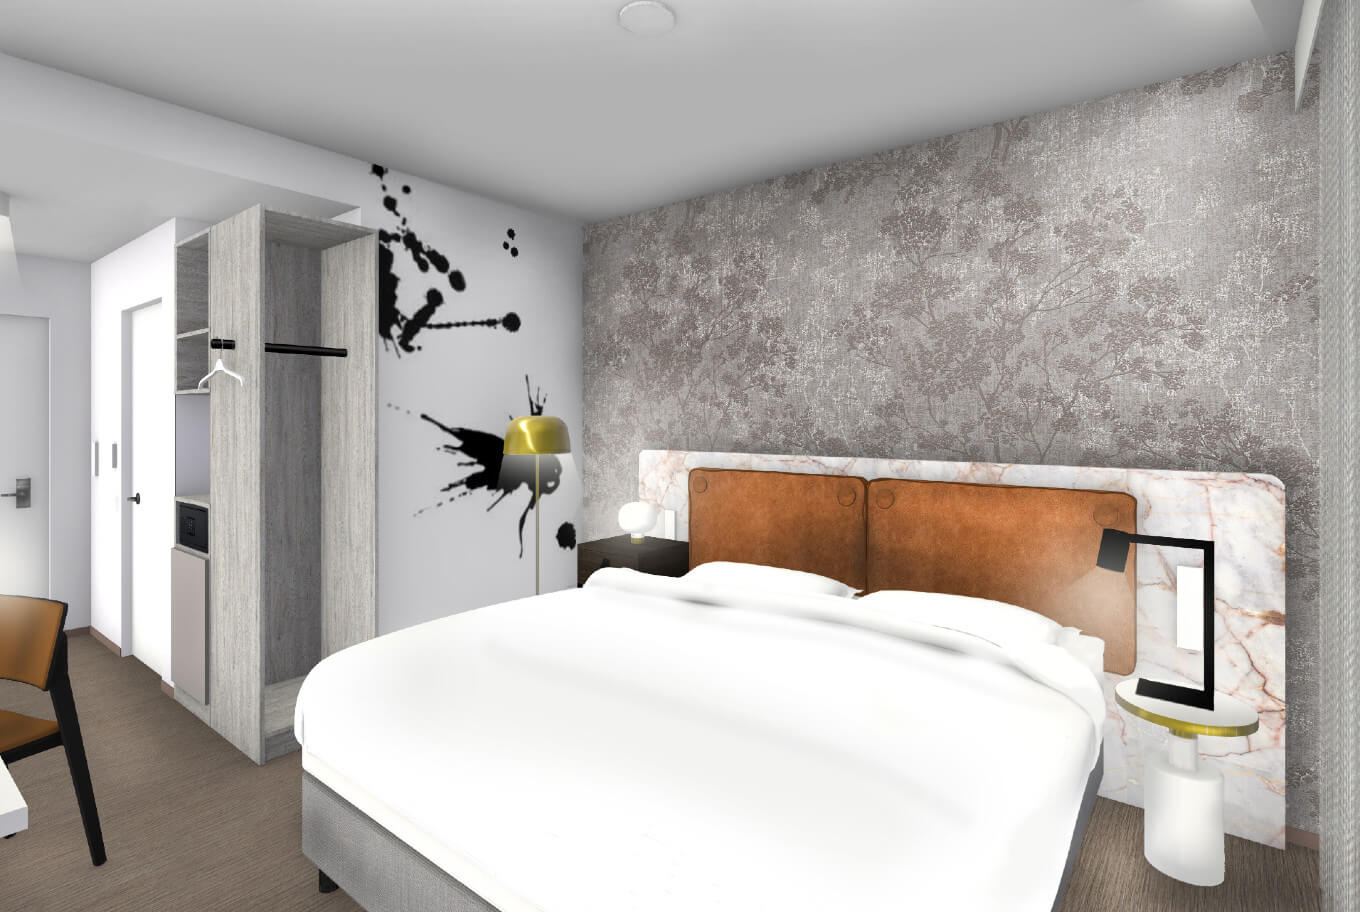 Hotel in Rostock, stay at the new Arthotel ANA Amber.